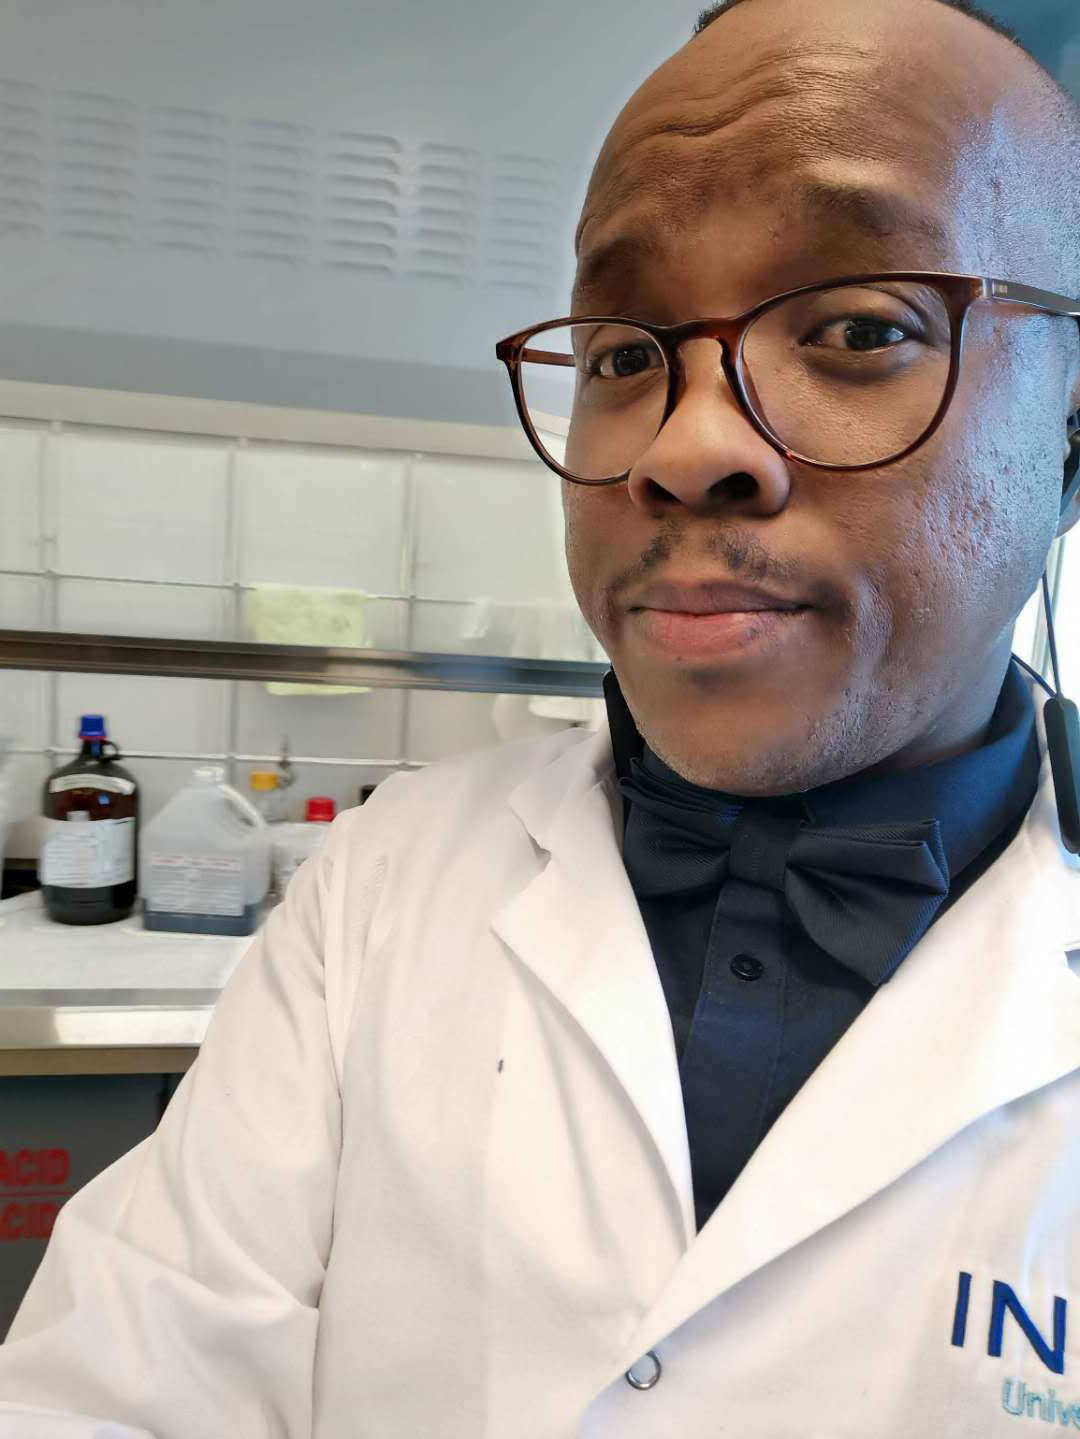 This 2019 photo provided by Itumeleng Moroenyane shows him in Laval, Quebec, Canada. Moroenyane, a doctoral student at the National Institute of Scientific Research in Quebec, grew up in post-apartheid South Africa and says he was the only Black botany student in his university's graduating class. He now makes it a priority to mentor younger Black scholars. (Itumeleng Moroenyane via AP)